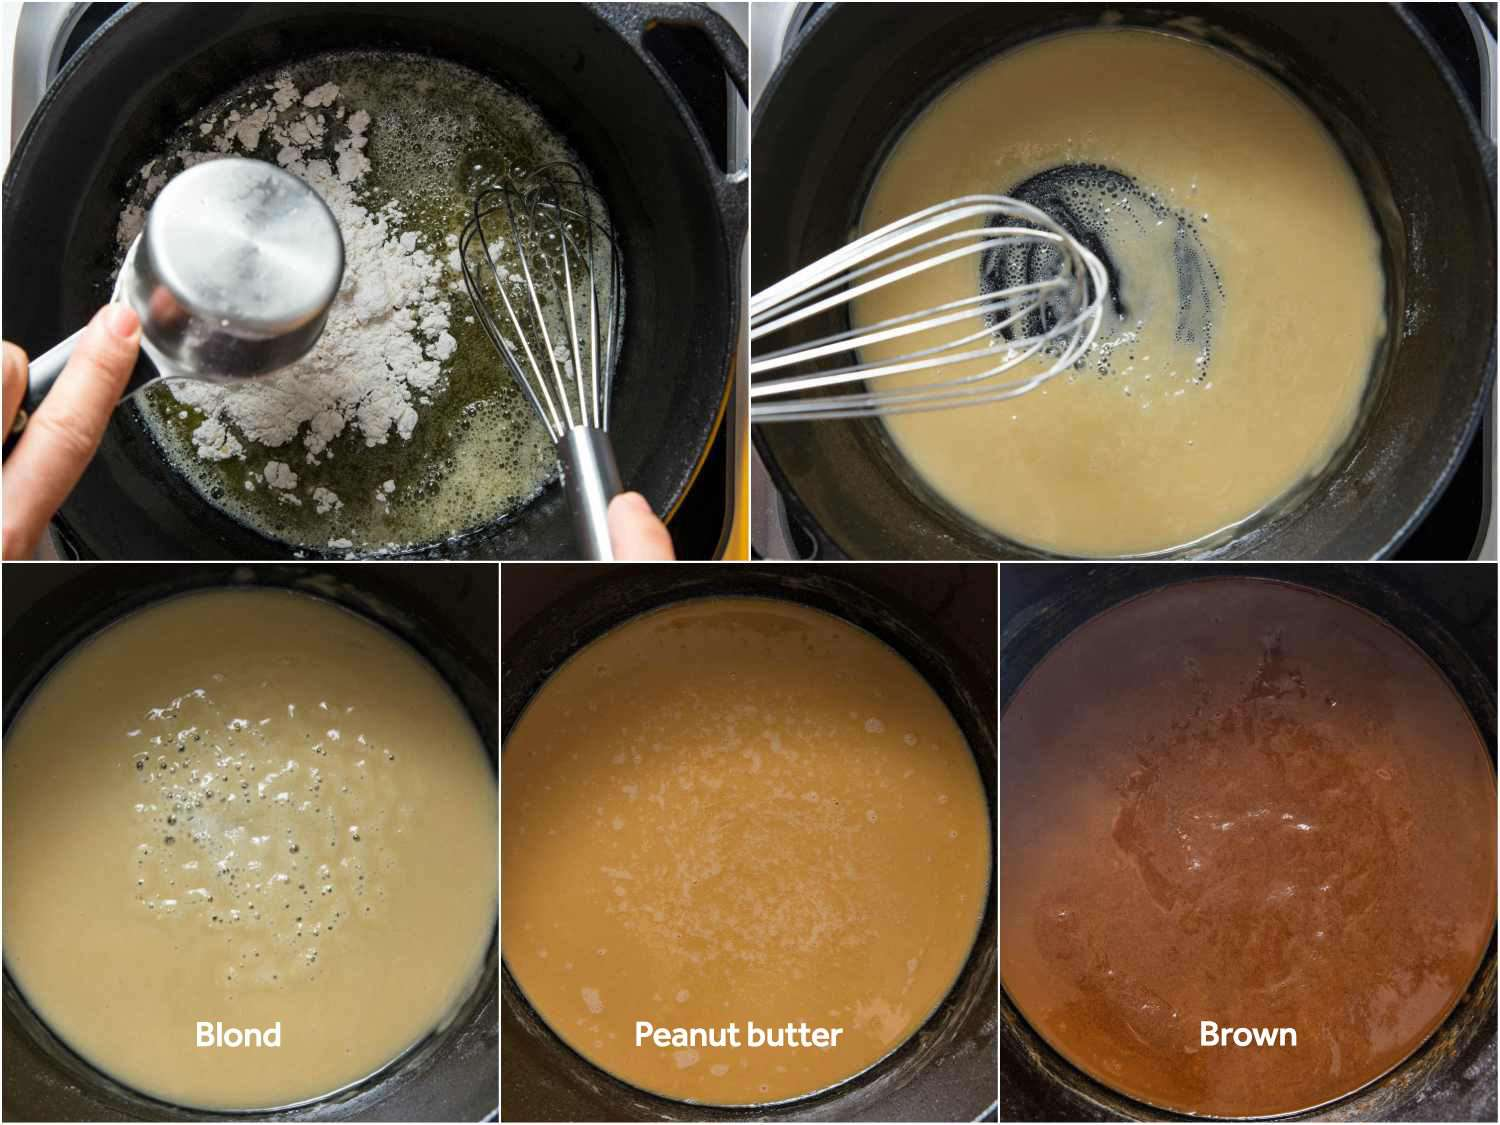 Making a roux by cooking flour with butter, with a collage showing different stages of doneness (blond, peanut butter, brown)